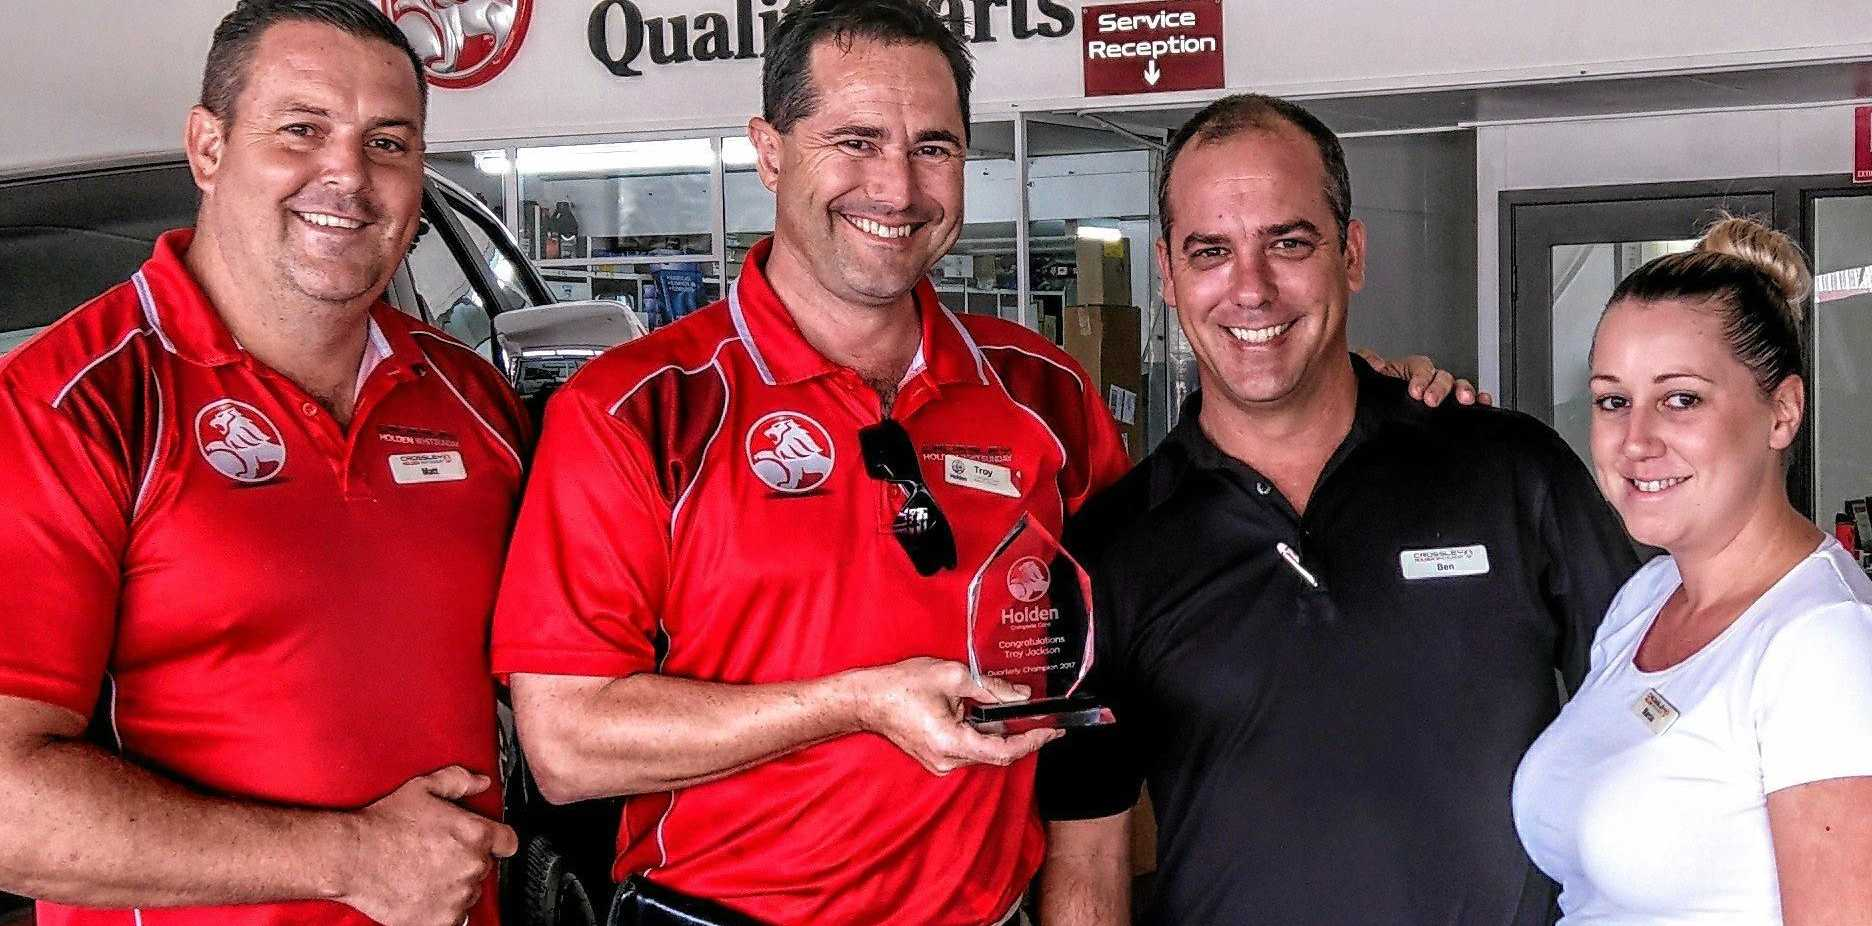 GREAT SERVICE: Crossley Holden Whitsunday staff Matthew Pettigrove, Troy Jackson with owner Ben Hancock and Marcia Bowder holding their customer service award.